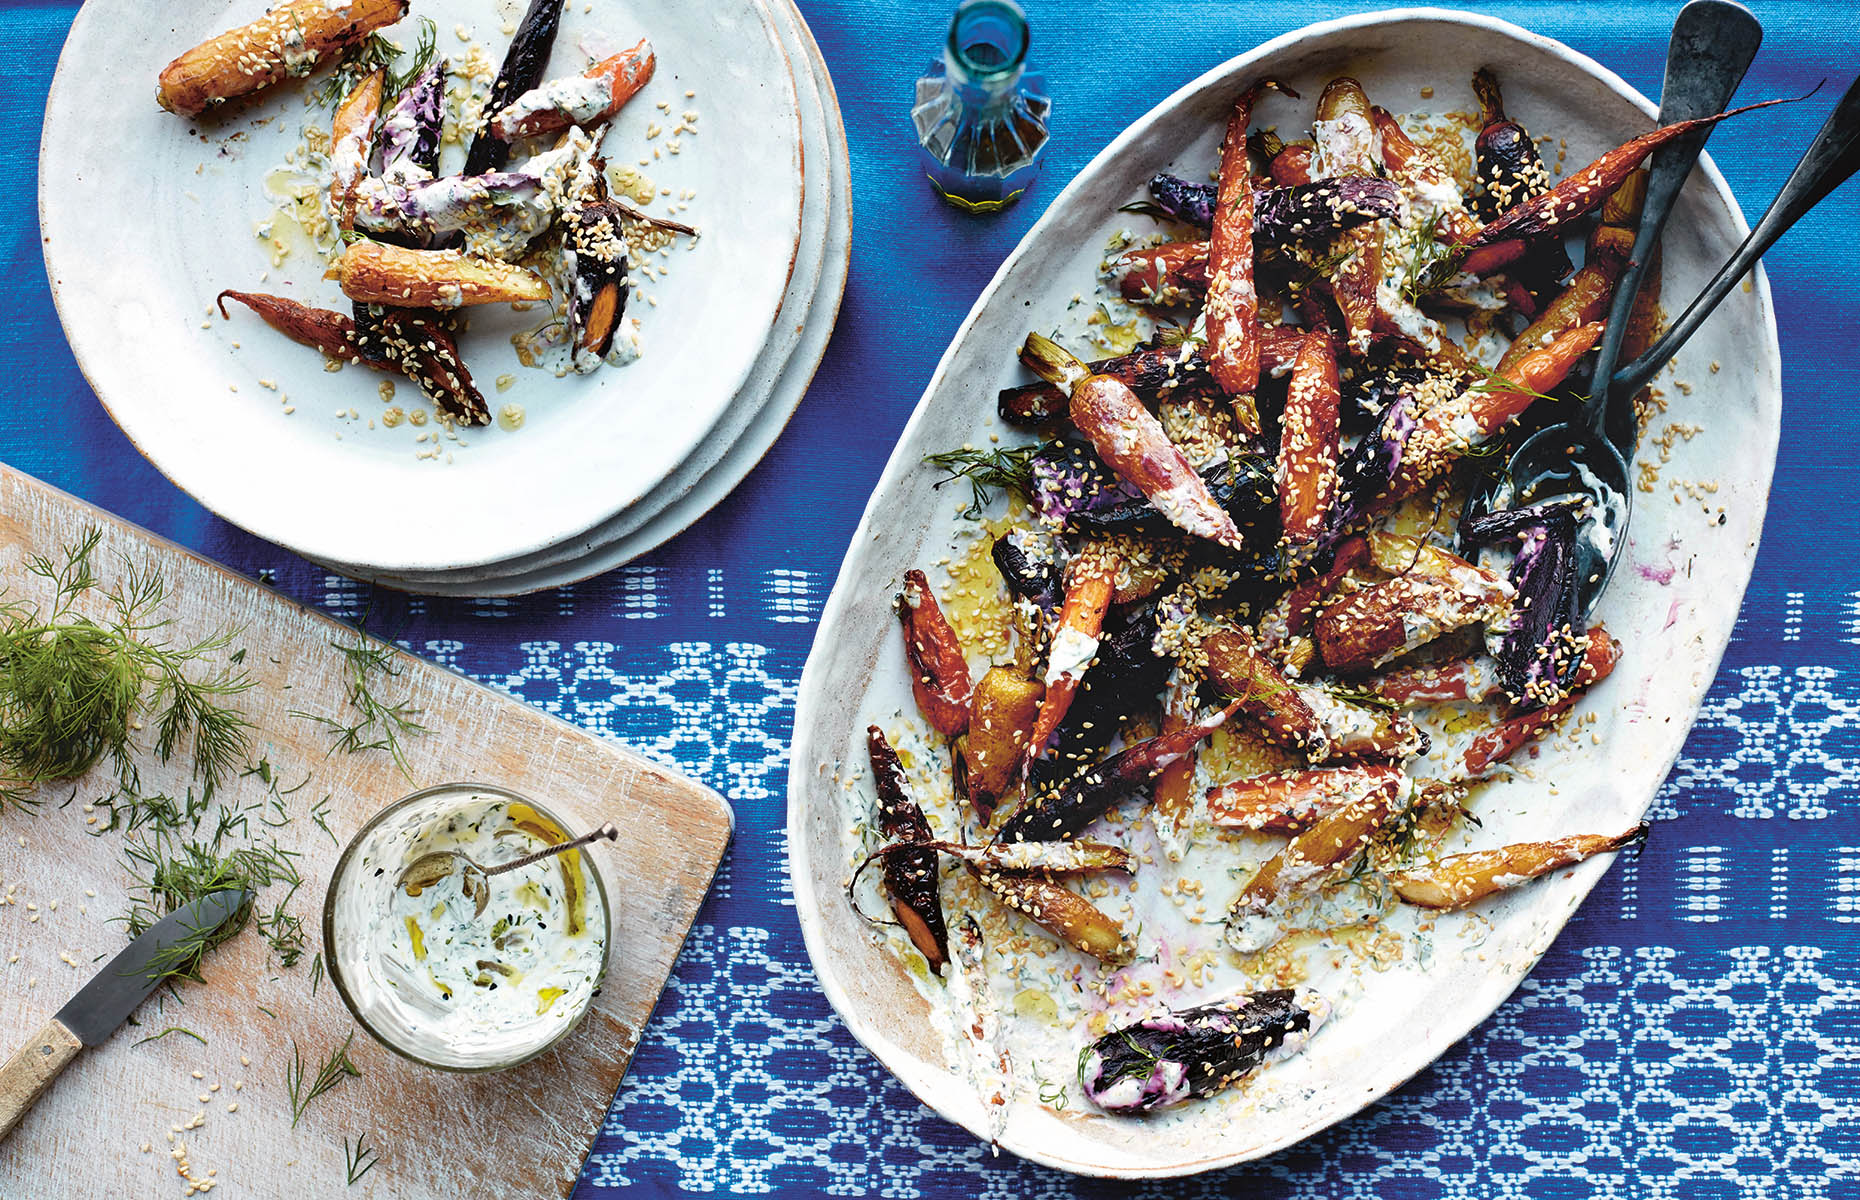 Roast rainbow carrots with herbed yogurt